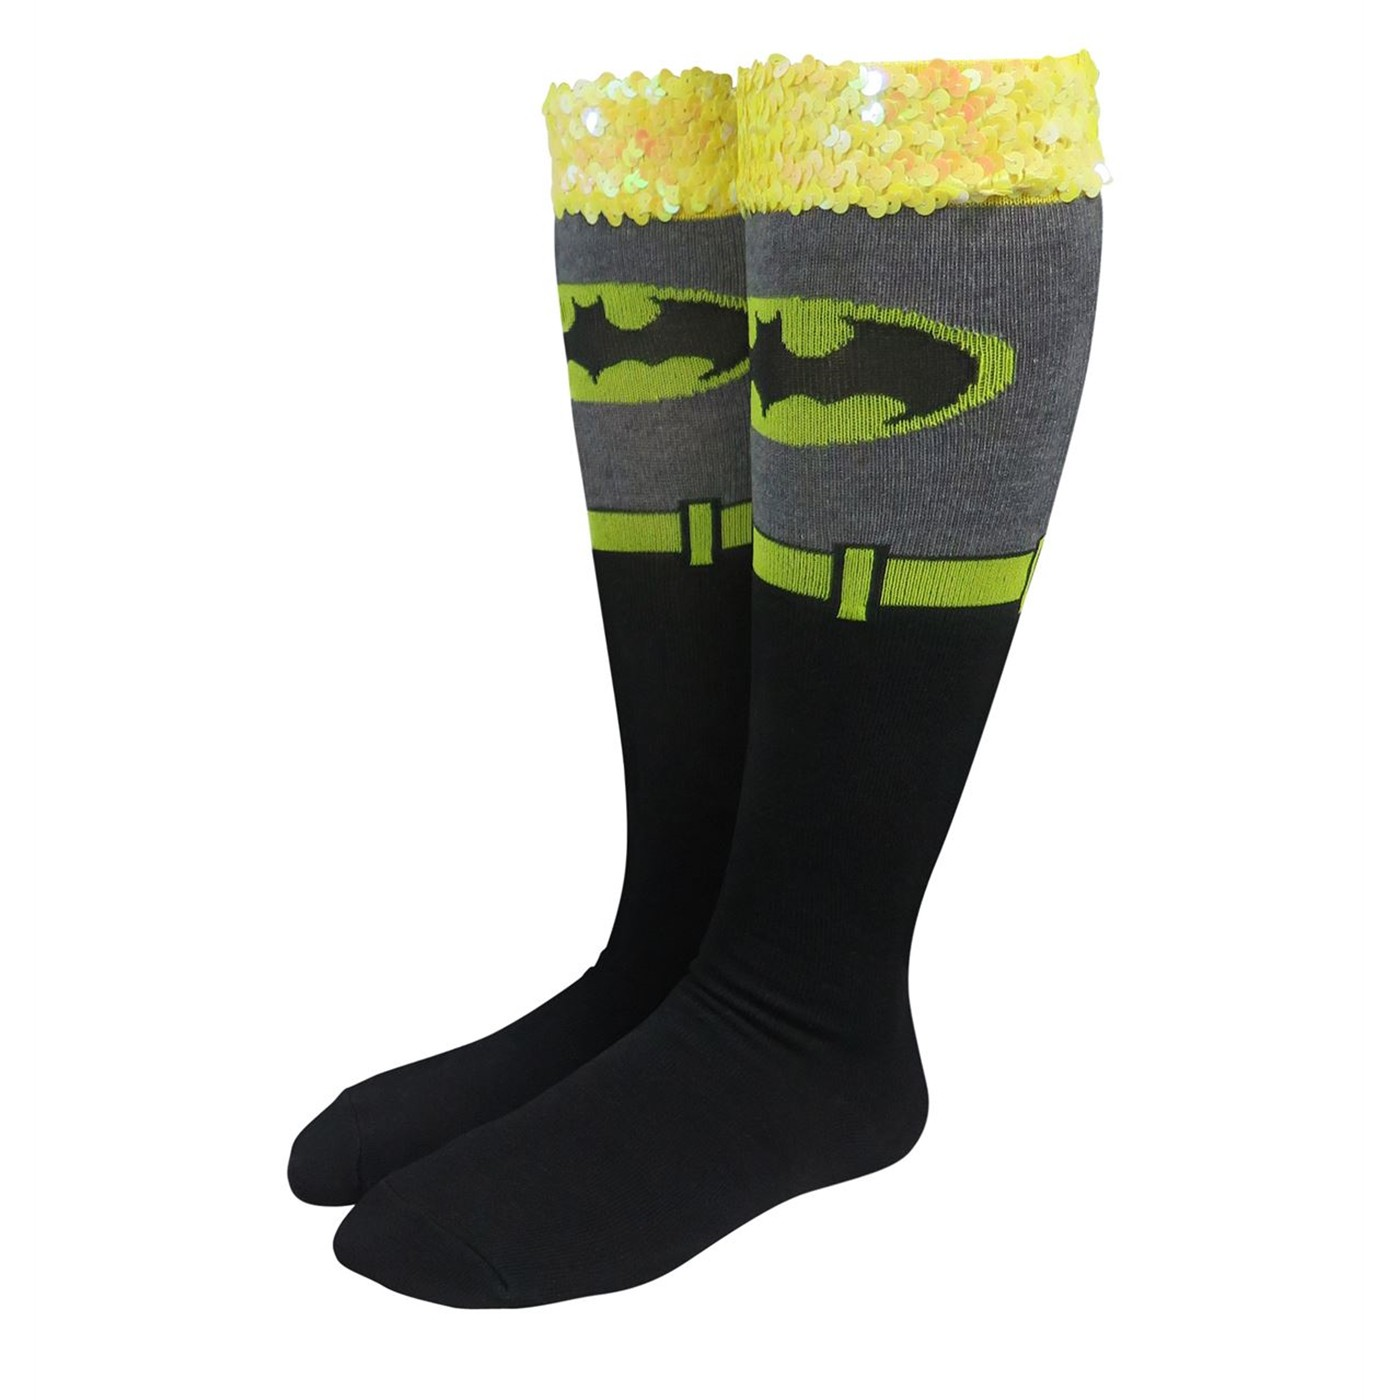 Batman Costume Women's Knee High Socks